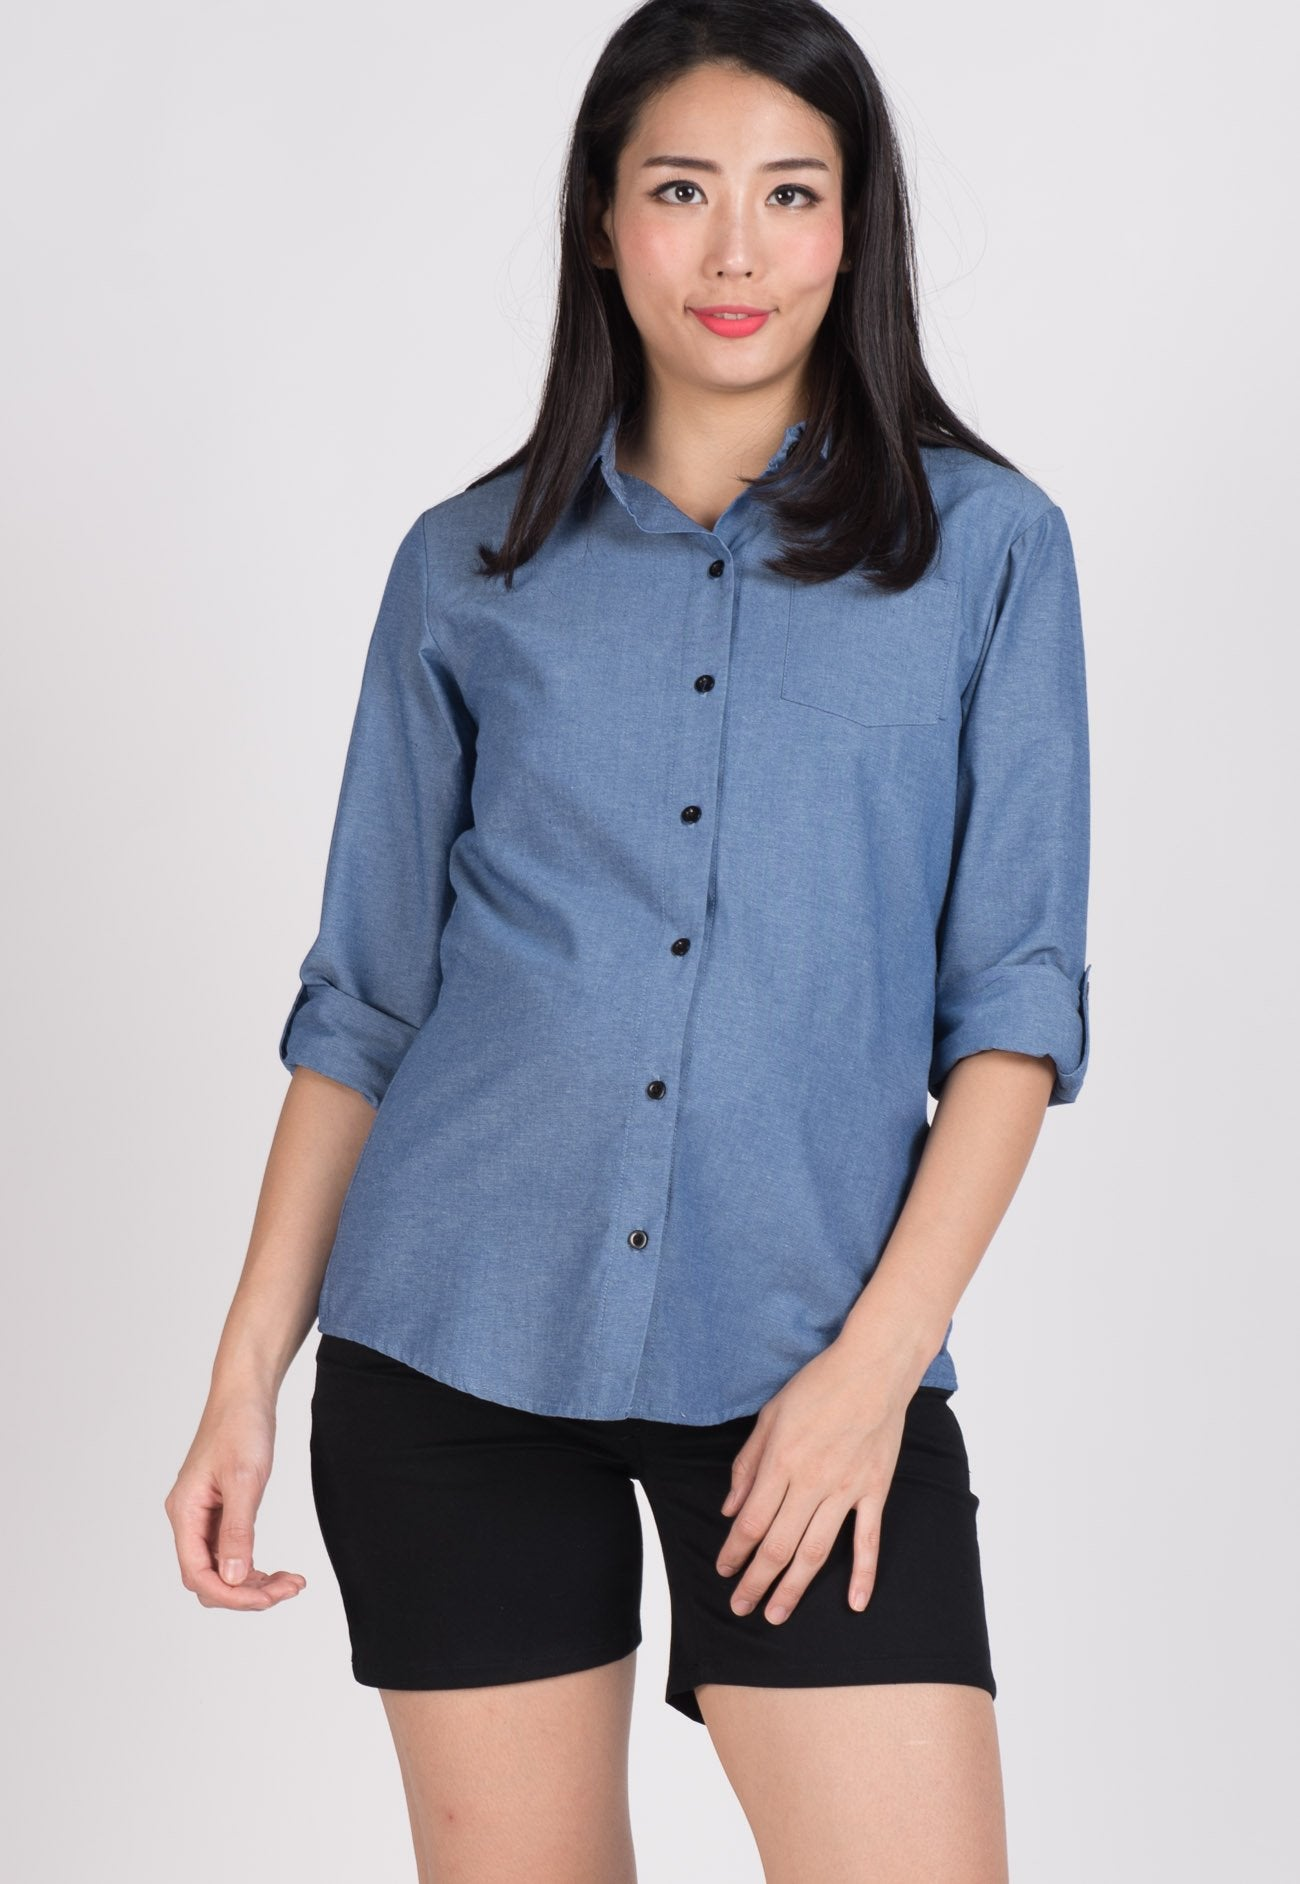 SALE Jeans Nursing Top  by JumpEatCry - Maternity and nursing wear